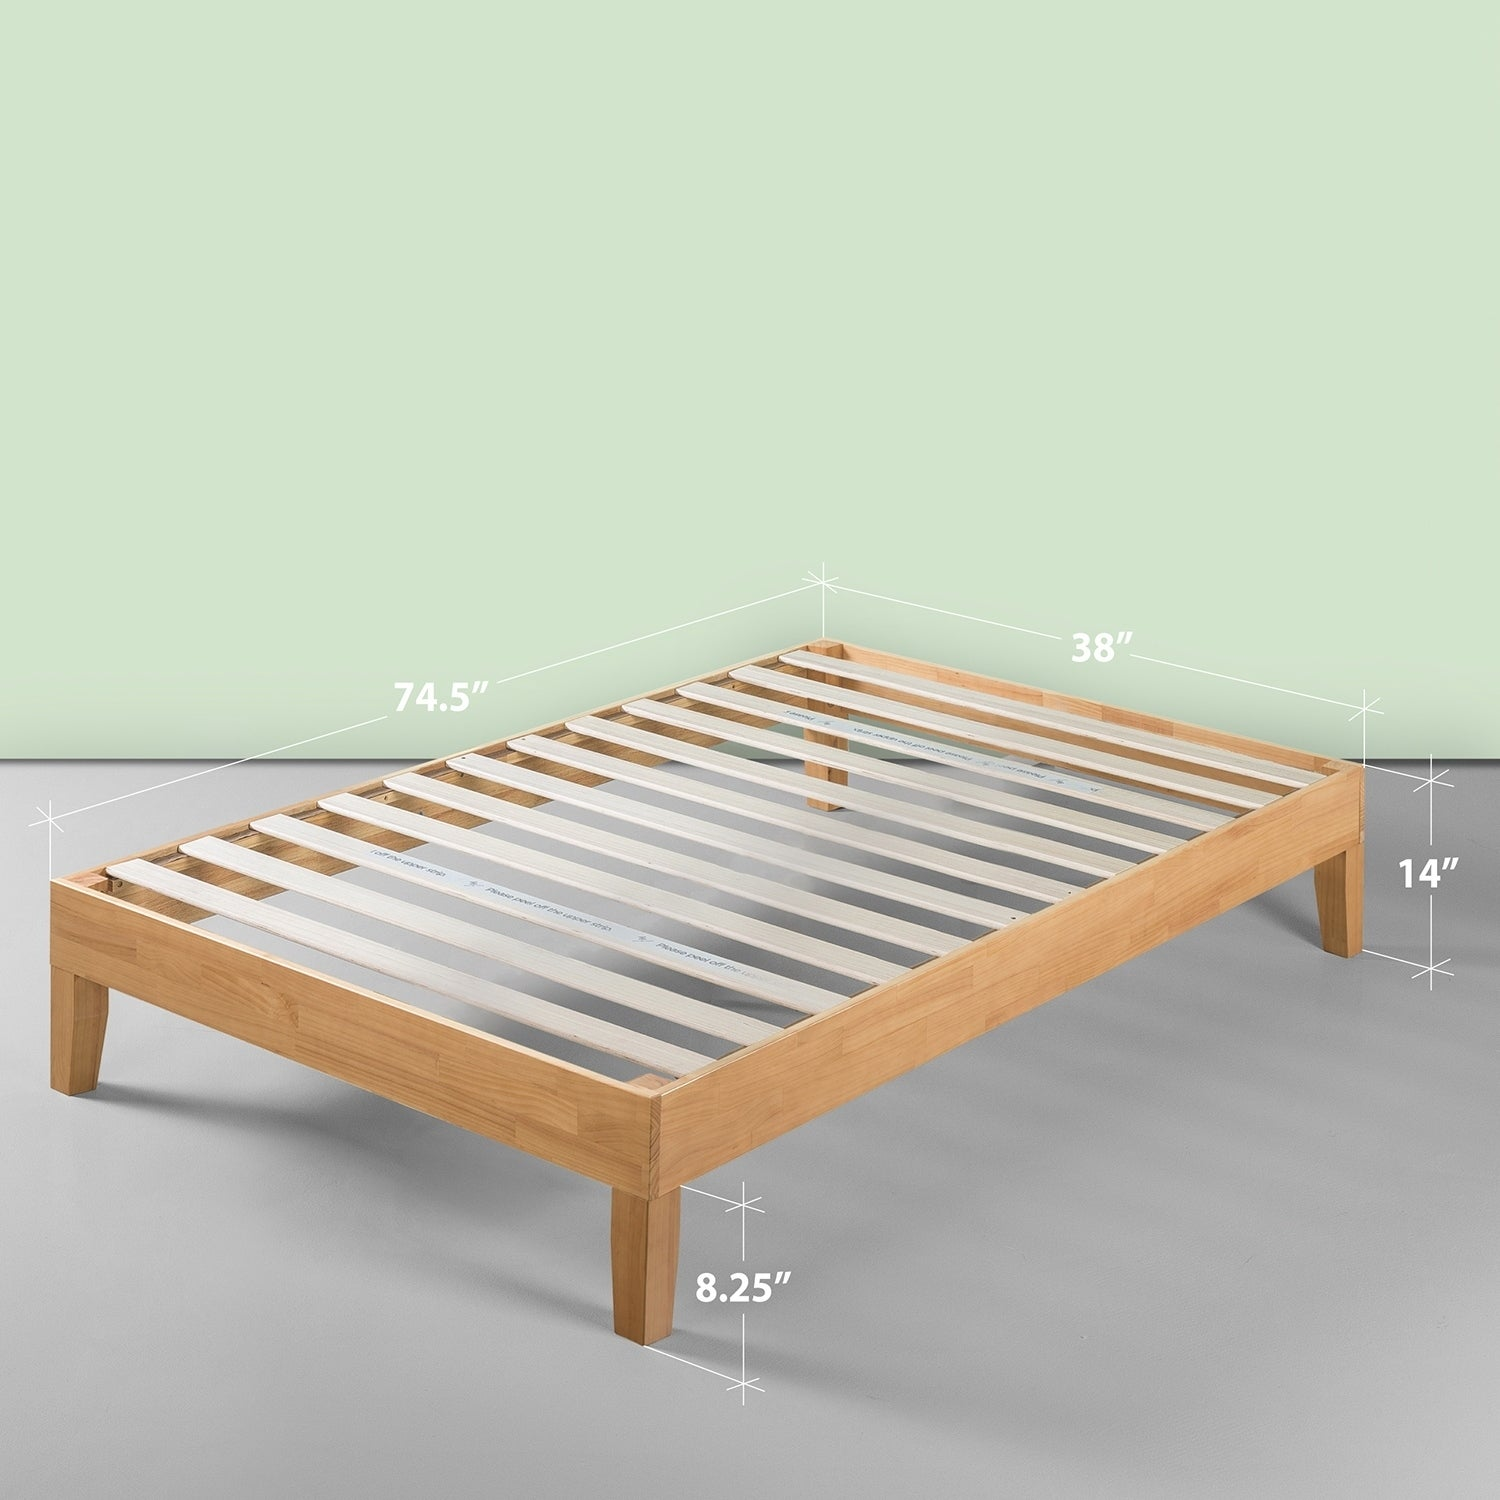 Priage By Zinus Deluxe 14 Inch Wood Platform Bed